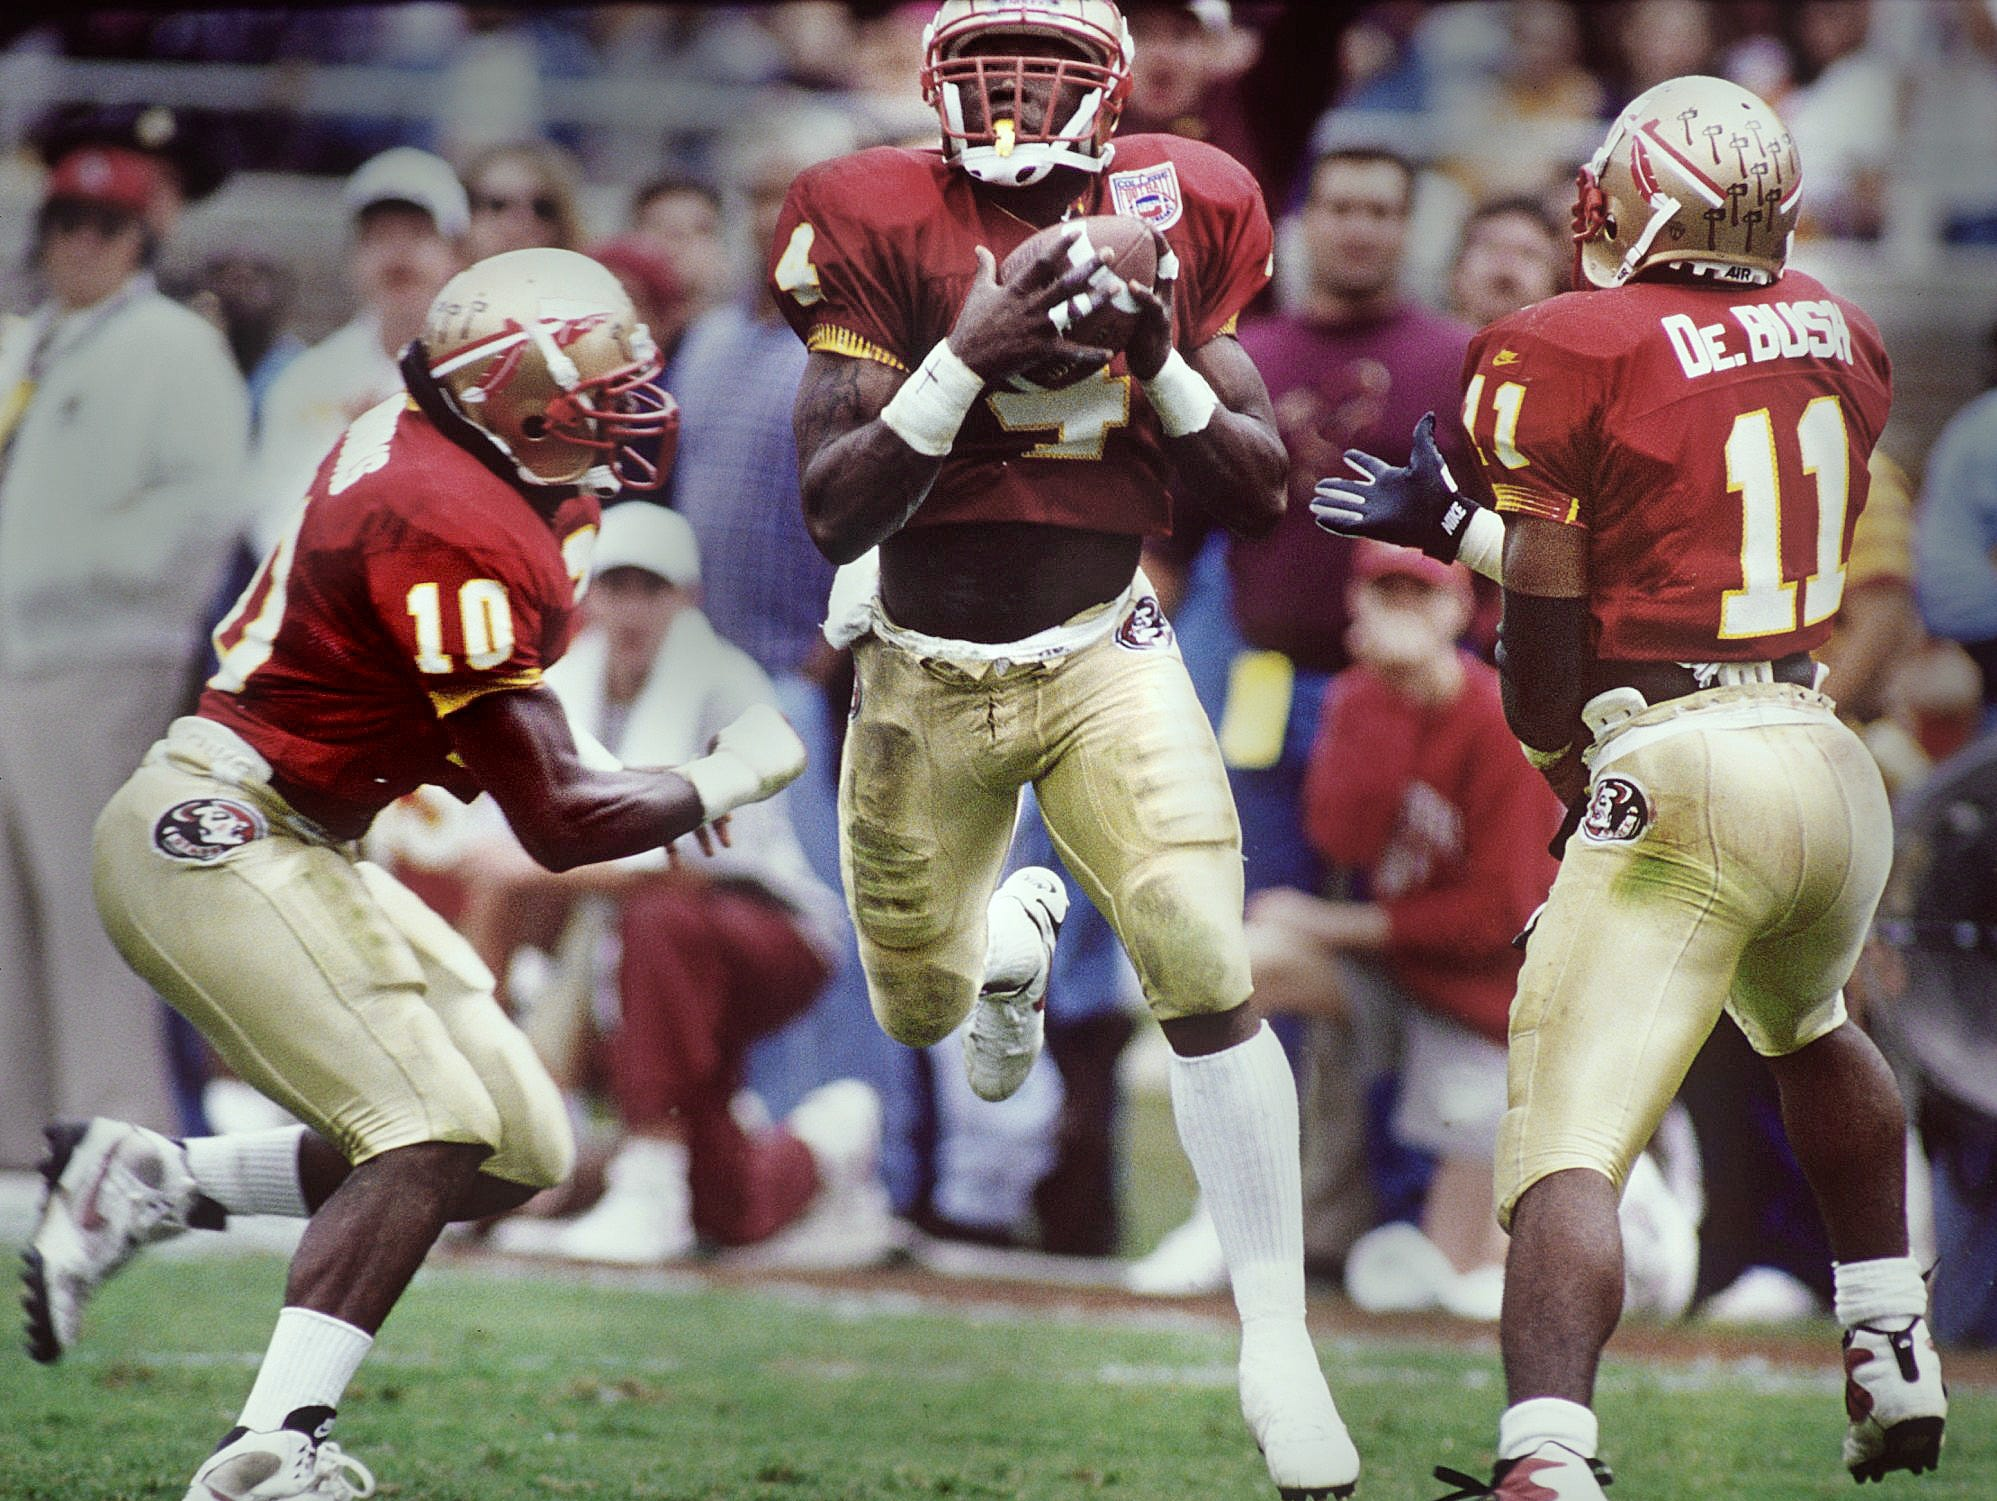 Corey Fuller, under the tutelage of high school coach Mike Hickman while at Rickards, blossomed into an All-American at FSU before playing nine seasons in the NFL.